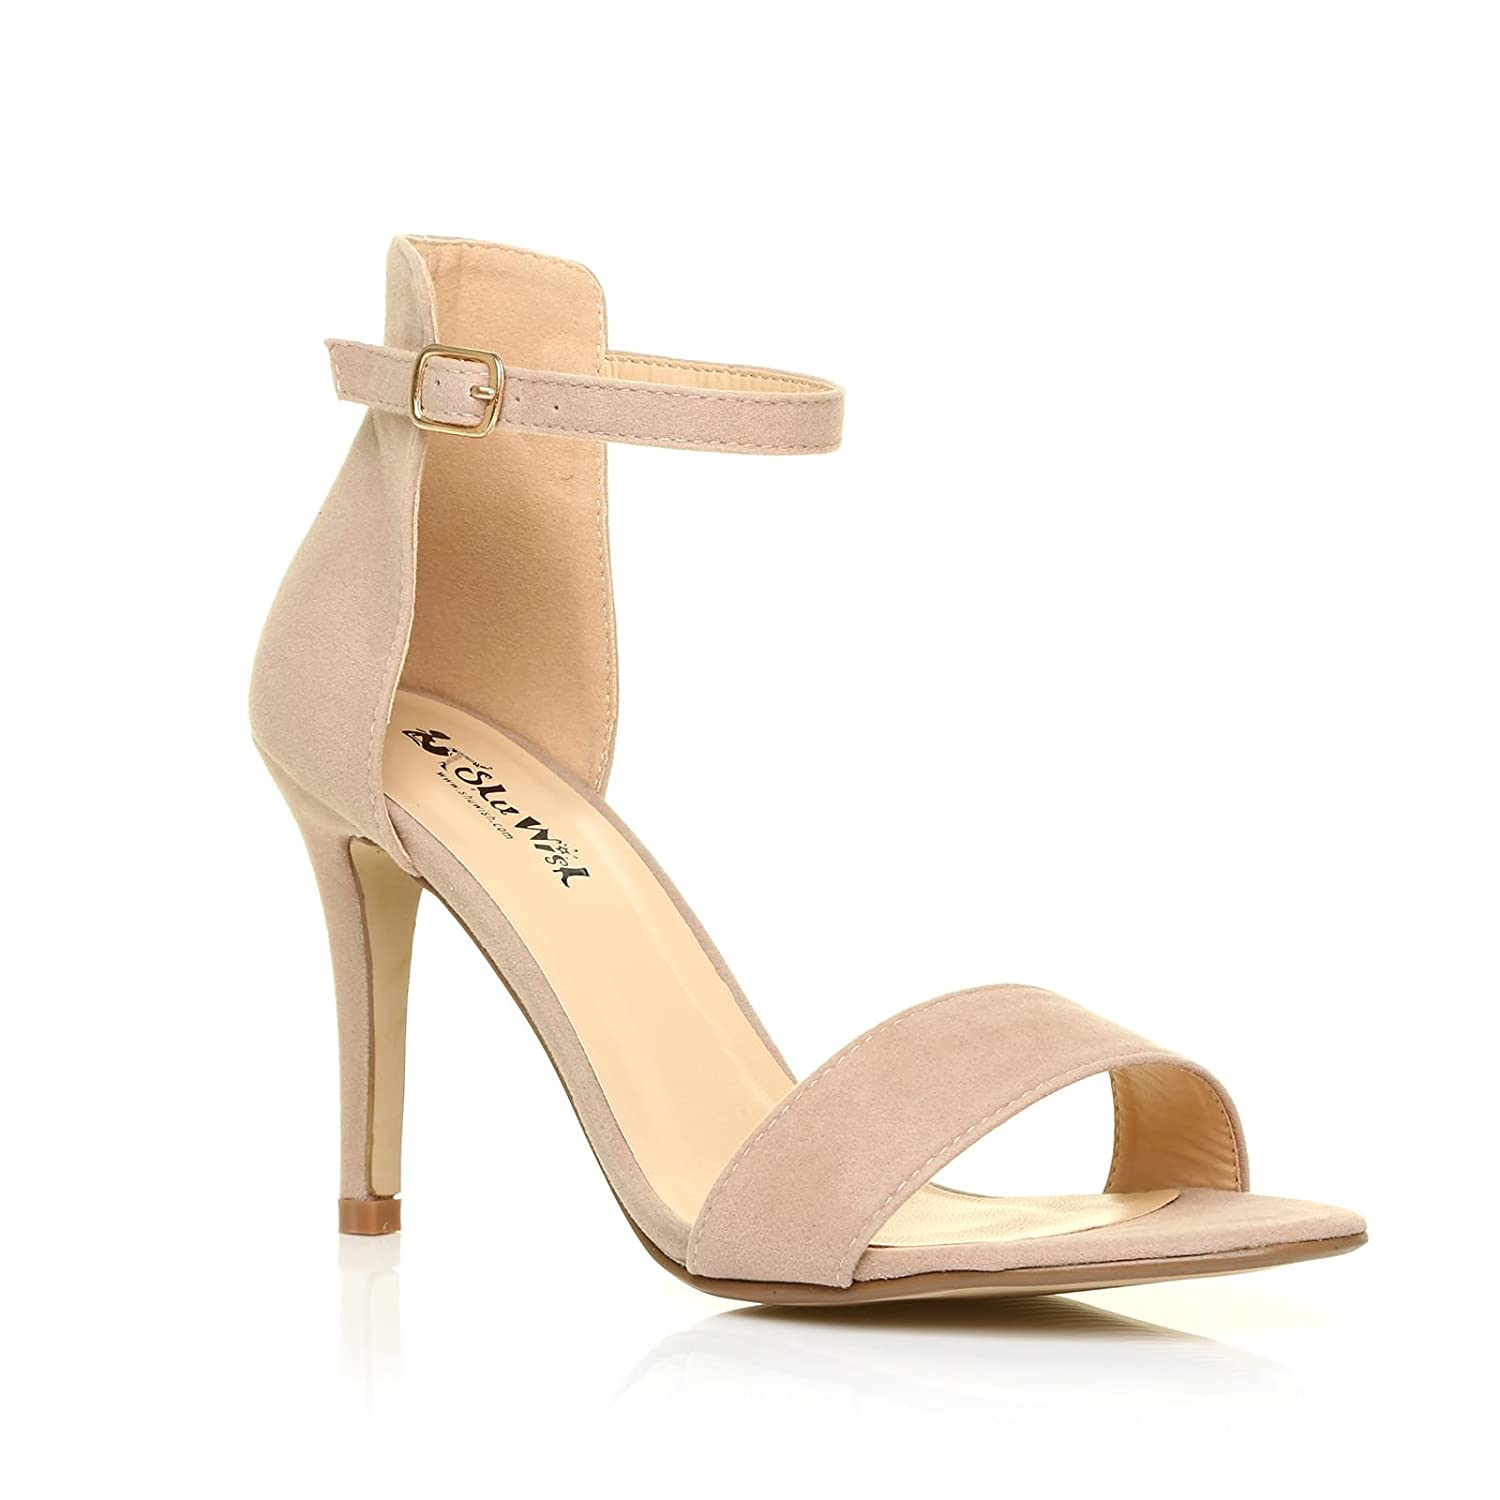 9cd9a165331 PAM Nude Suede Ankle Strap Barely There High Heel Sandals: Amazon.co ...